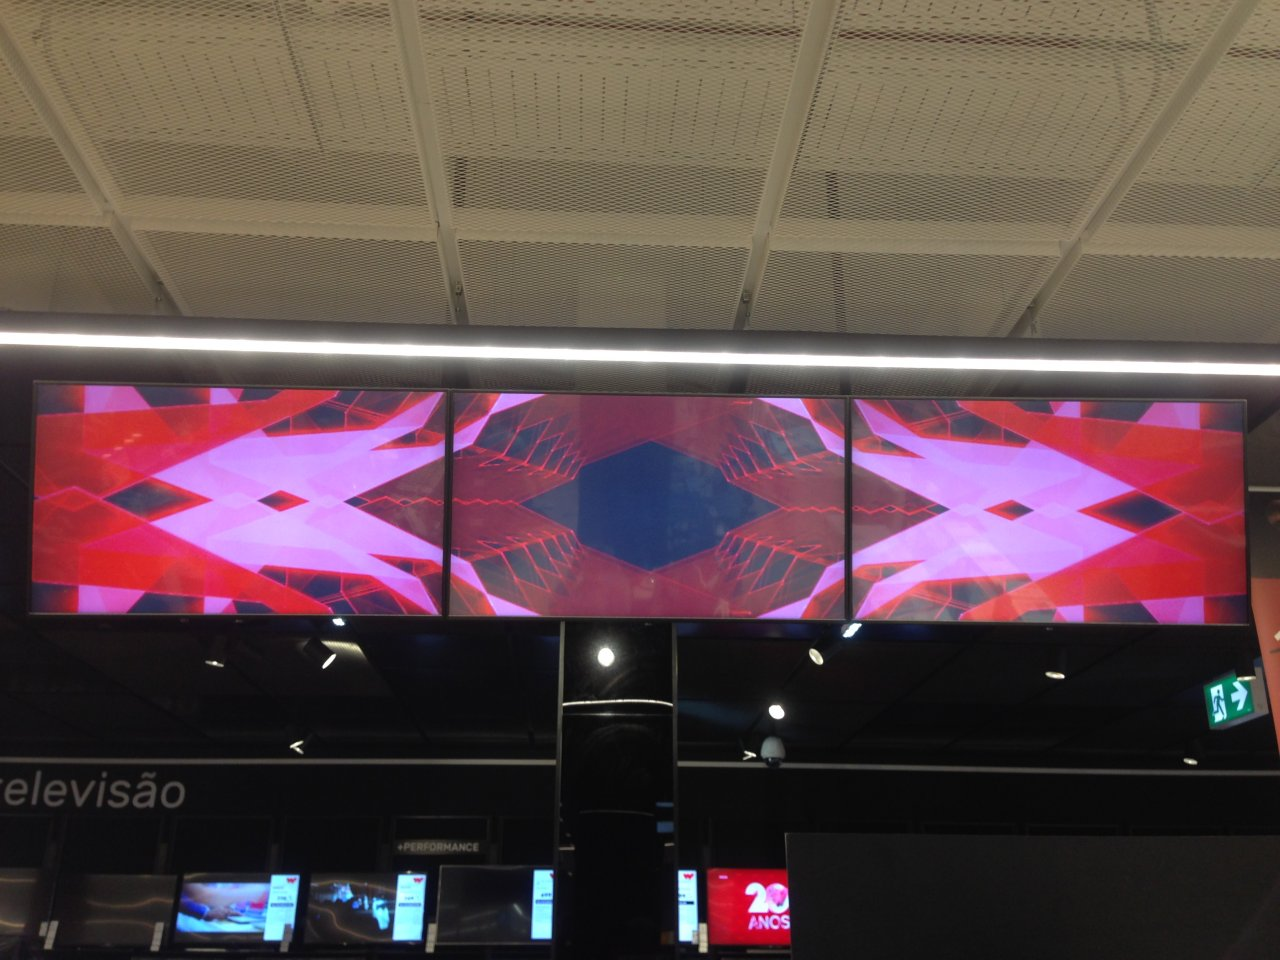 Video wall chained